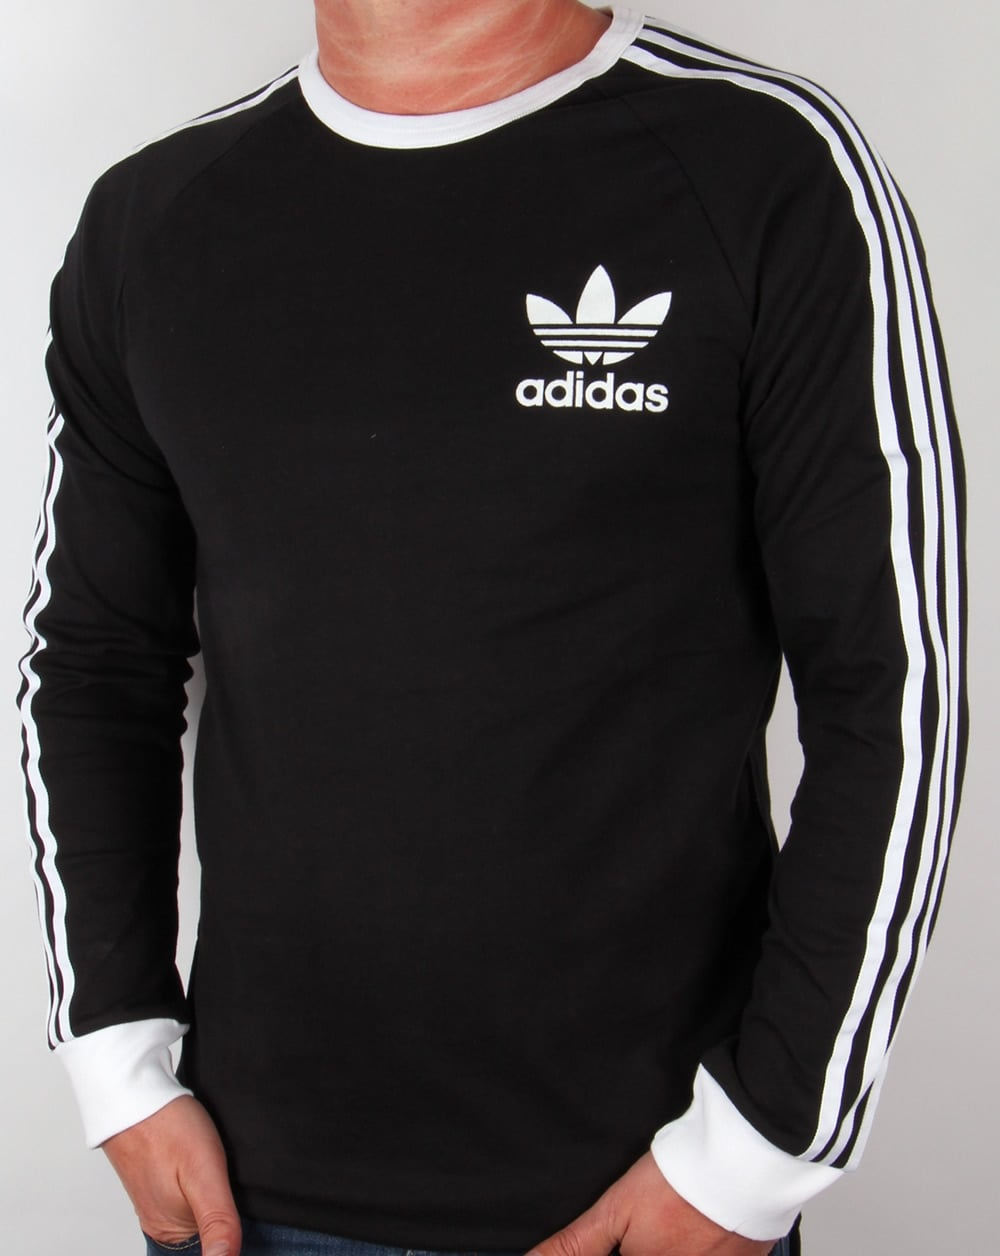 Adidas originals adicolour long sleeve t shirt black white for Adidas long sleeve t shirt with trefoil logo